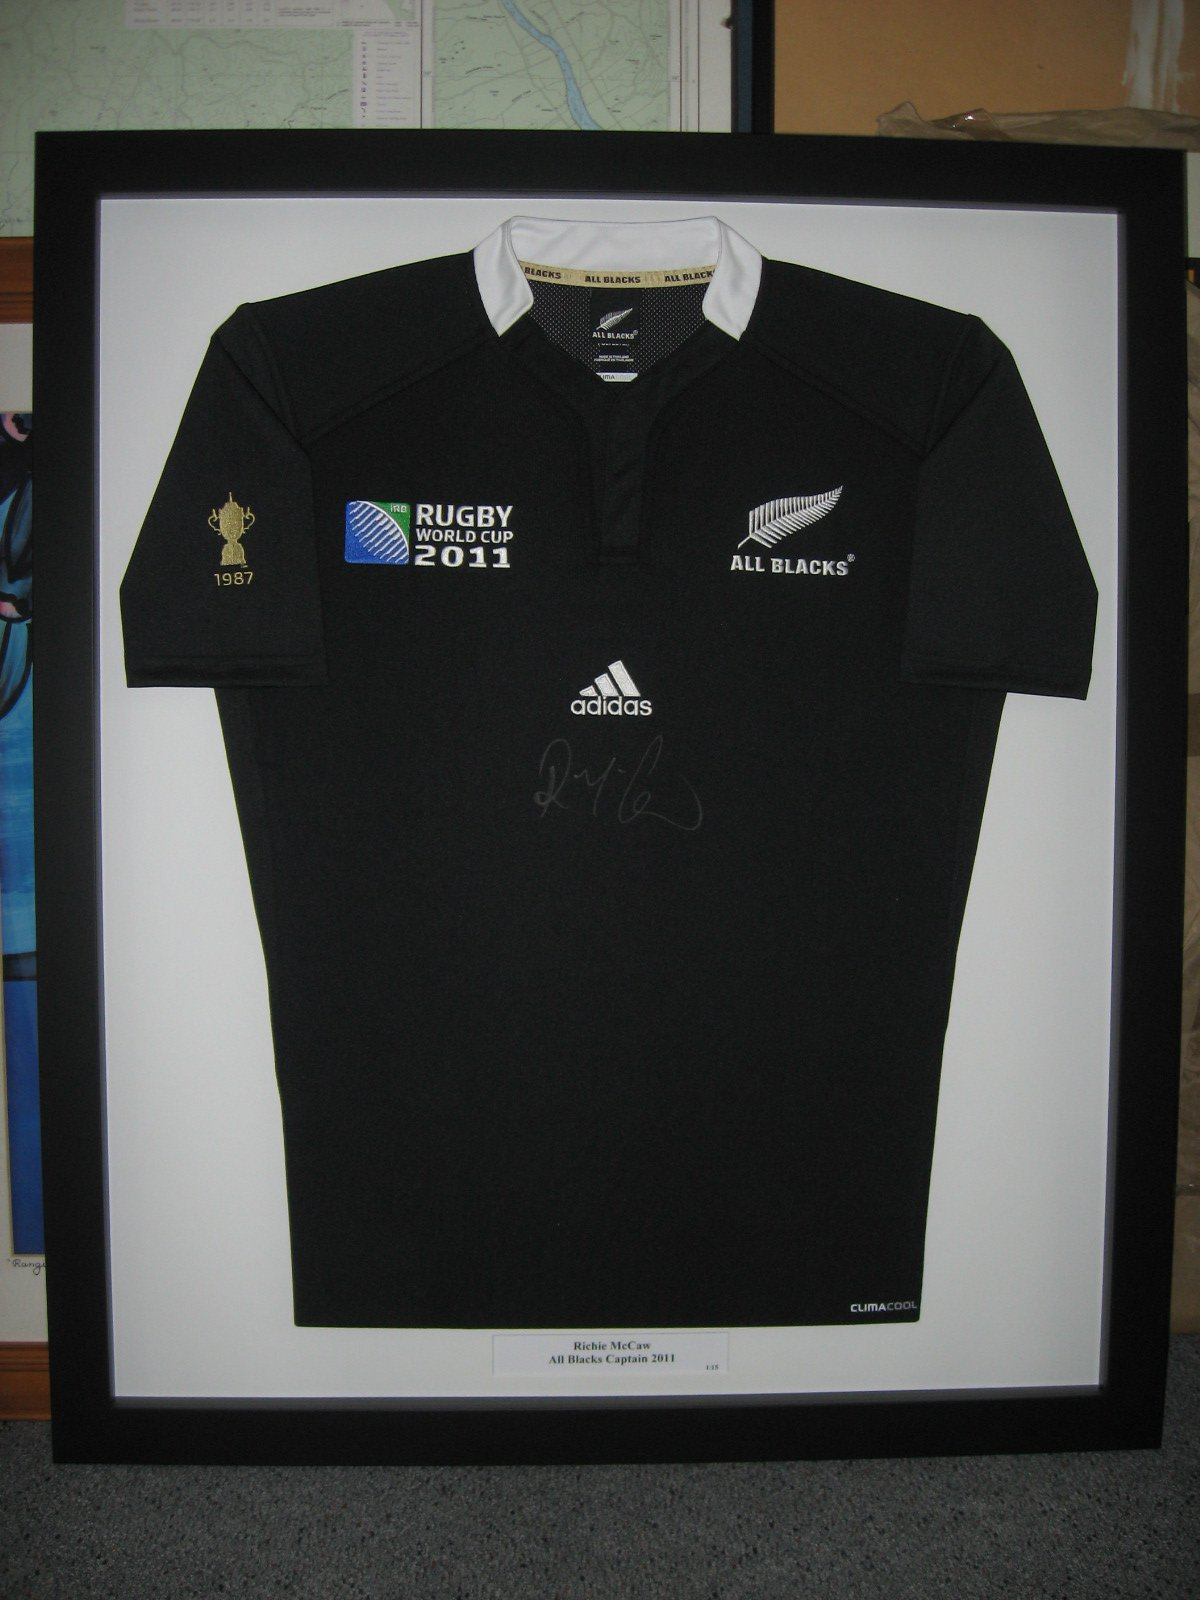 View of the framed sports tshirt